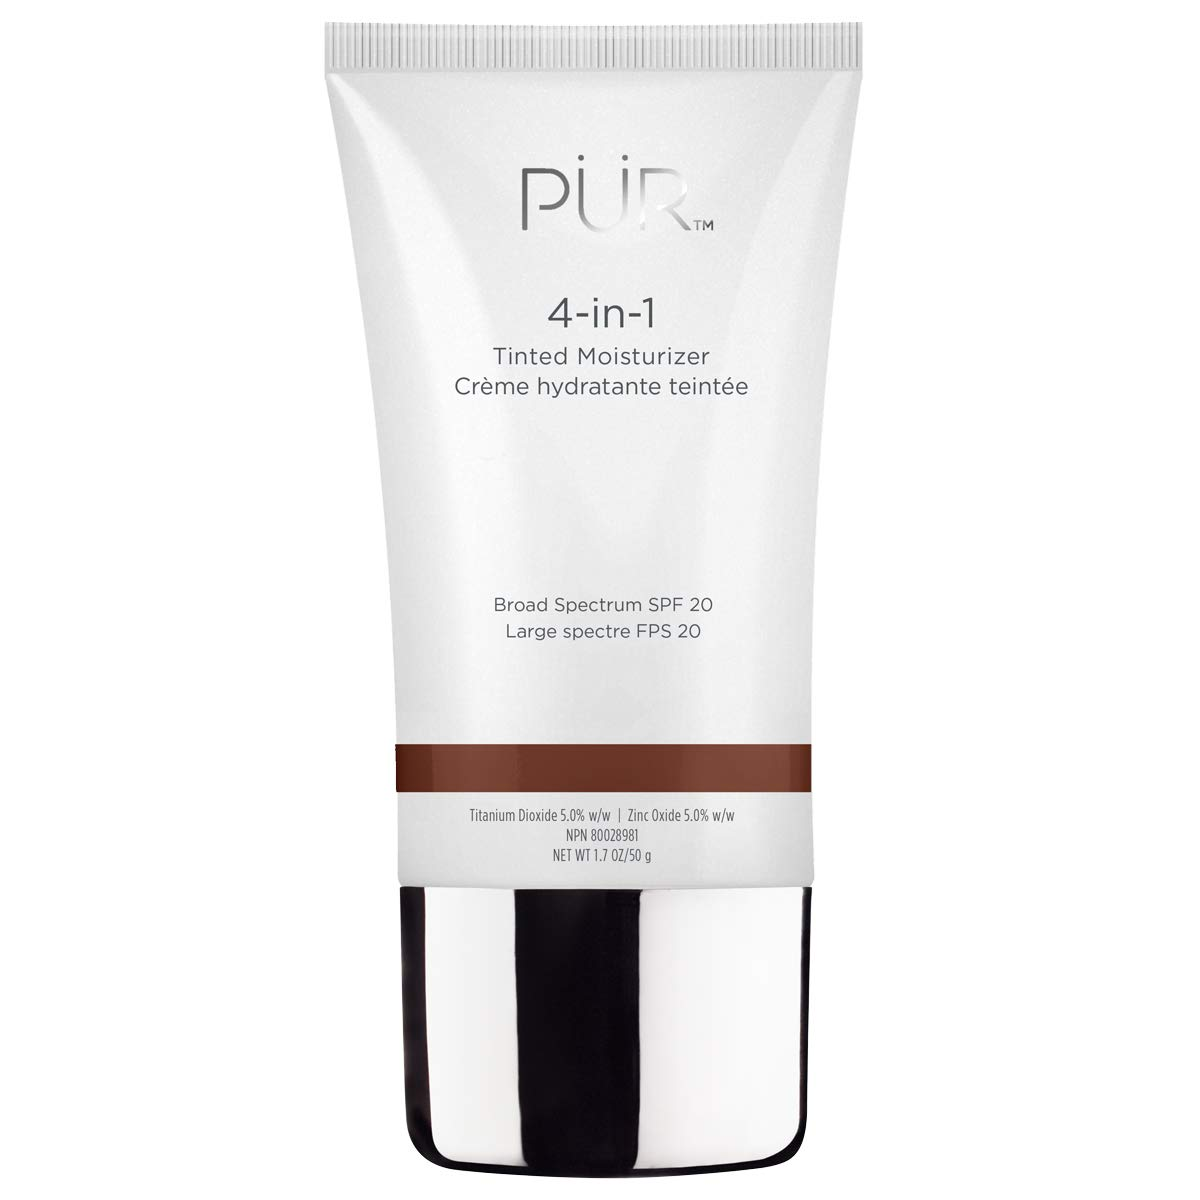 PUR Cosmetics 4-in-1 Tinted Moisturizer in Coffee, 1.7 oz